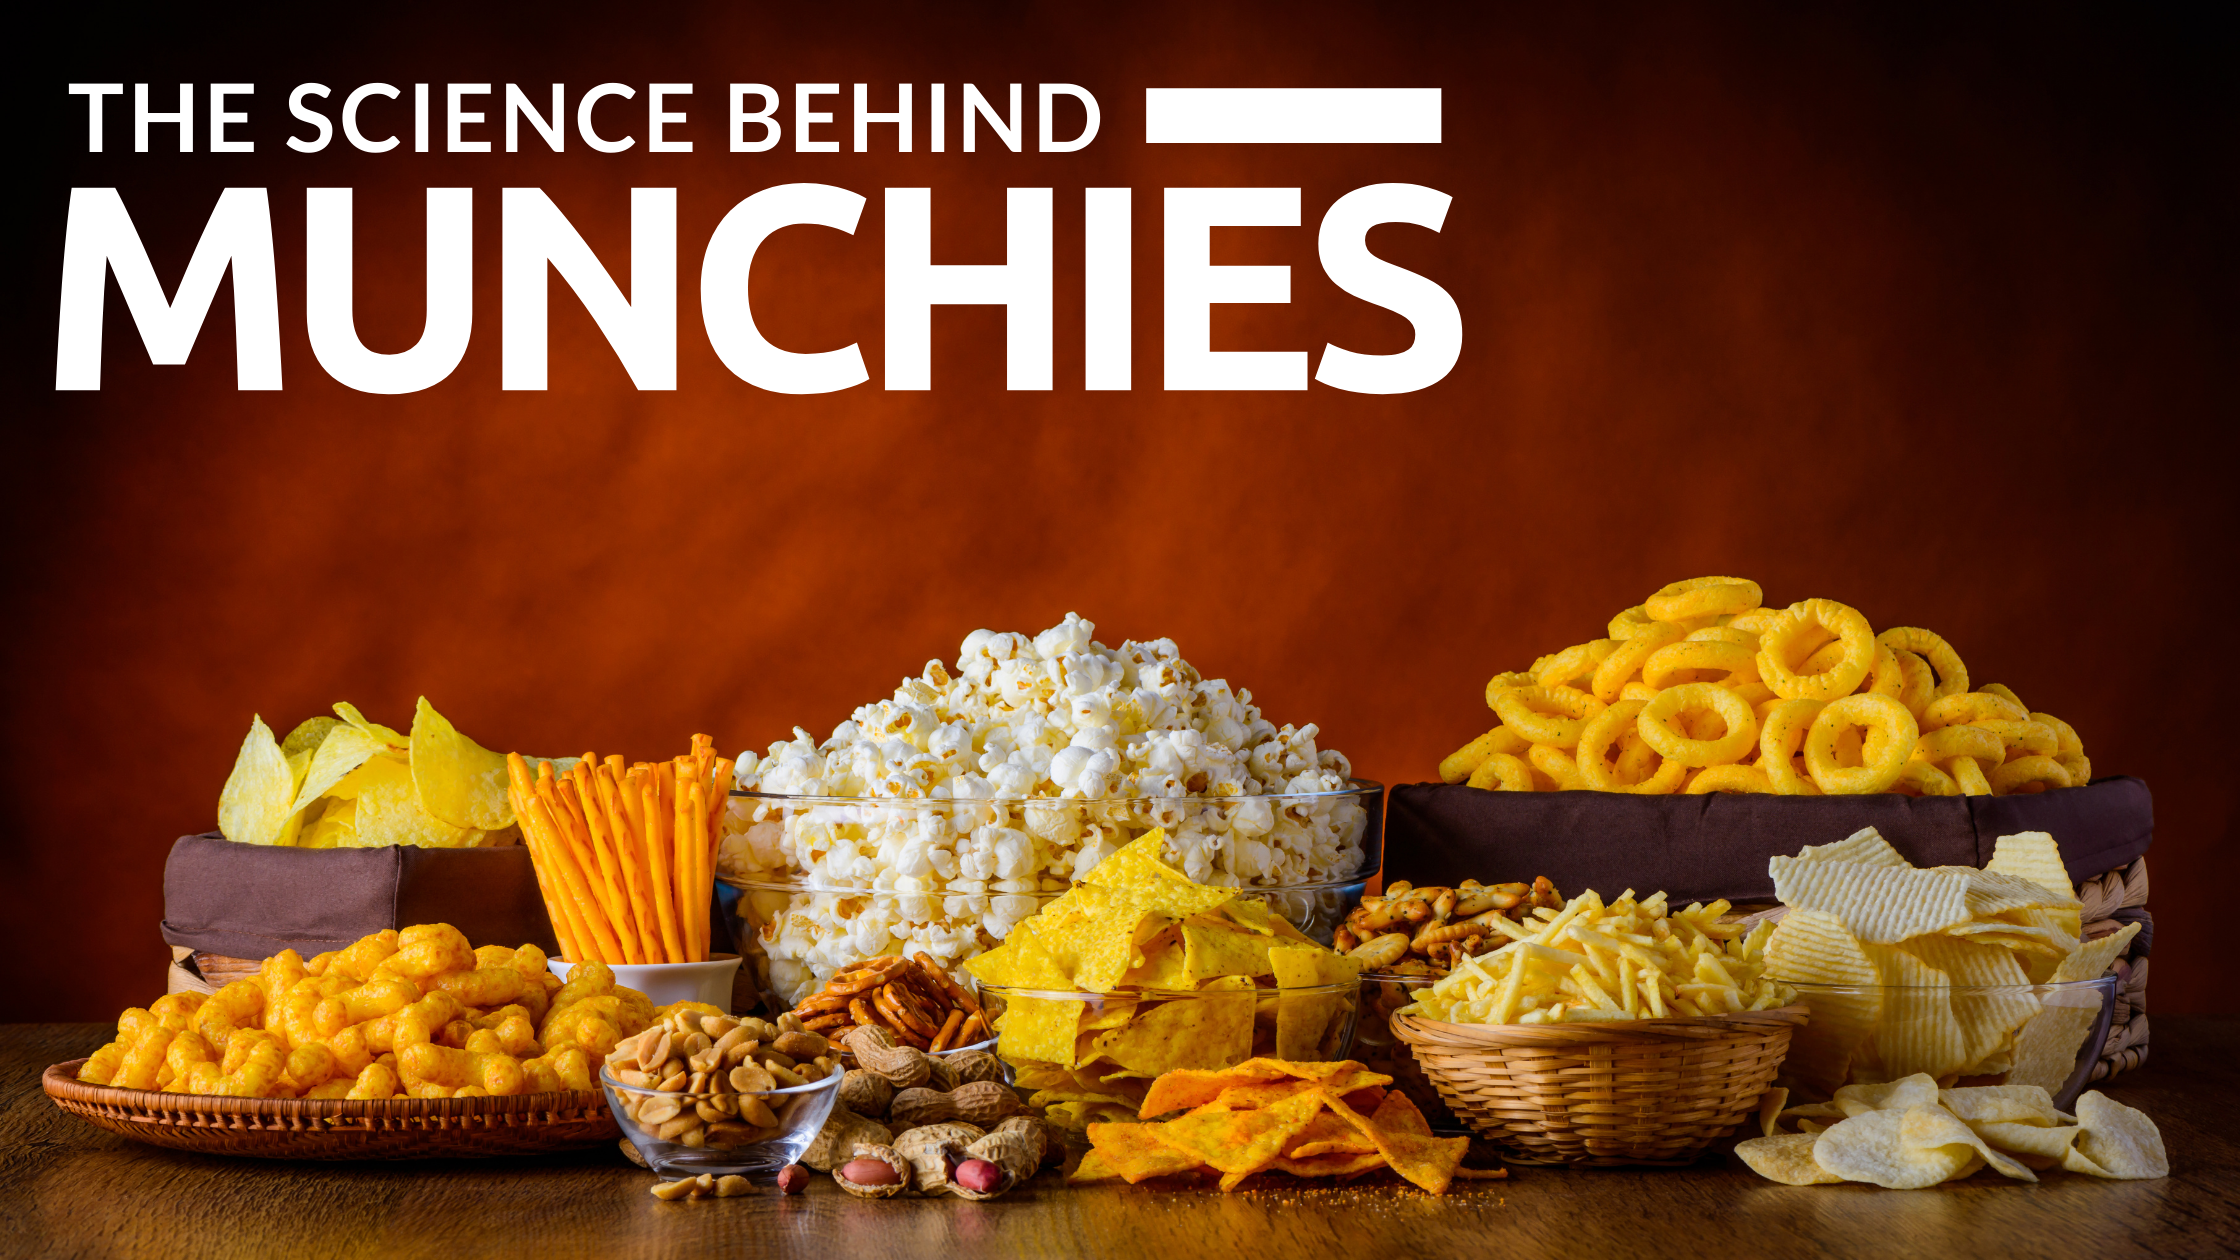 Science Behind the Munchies